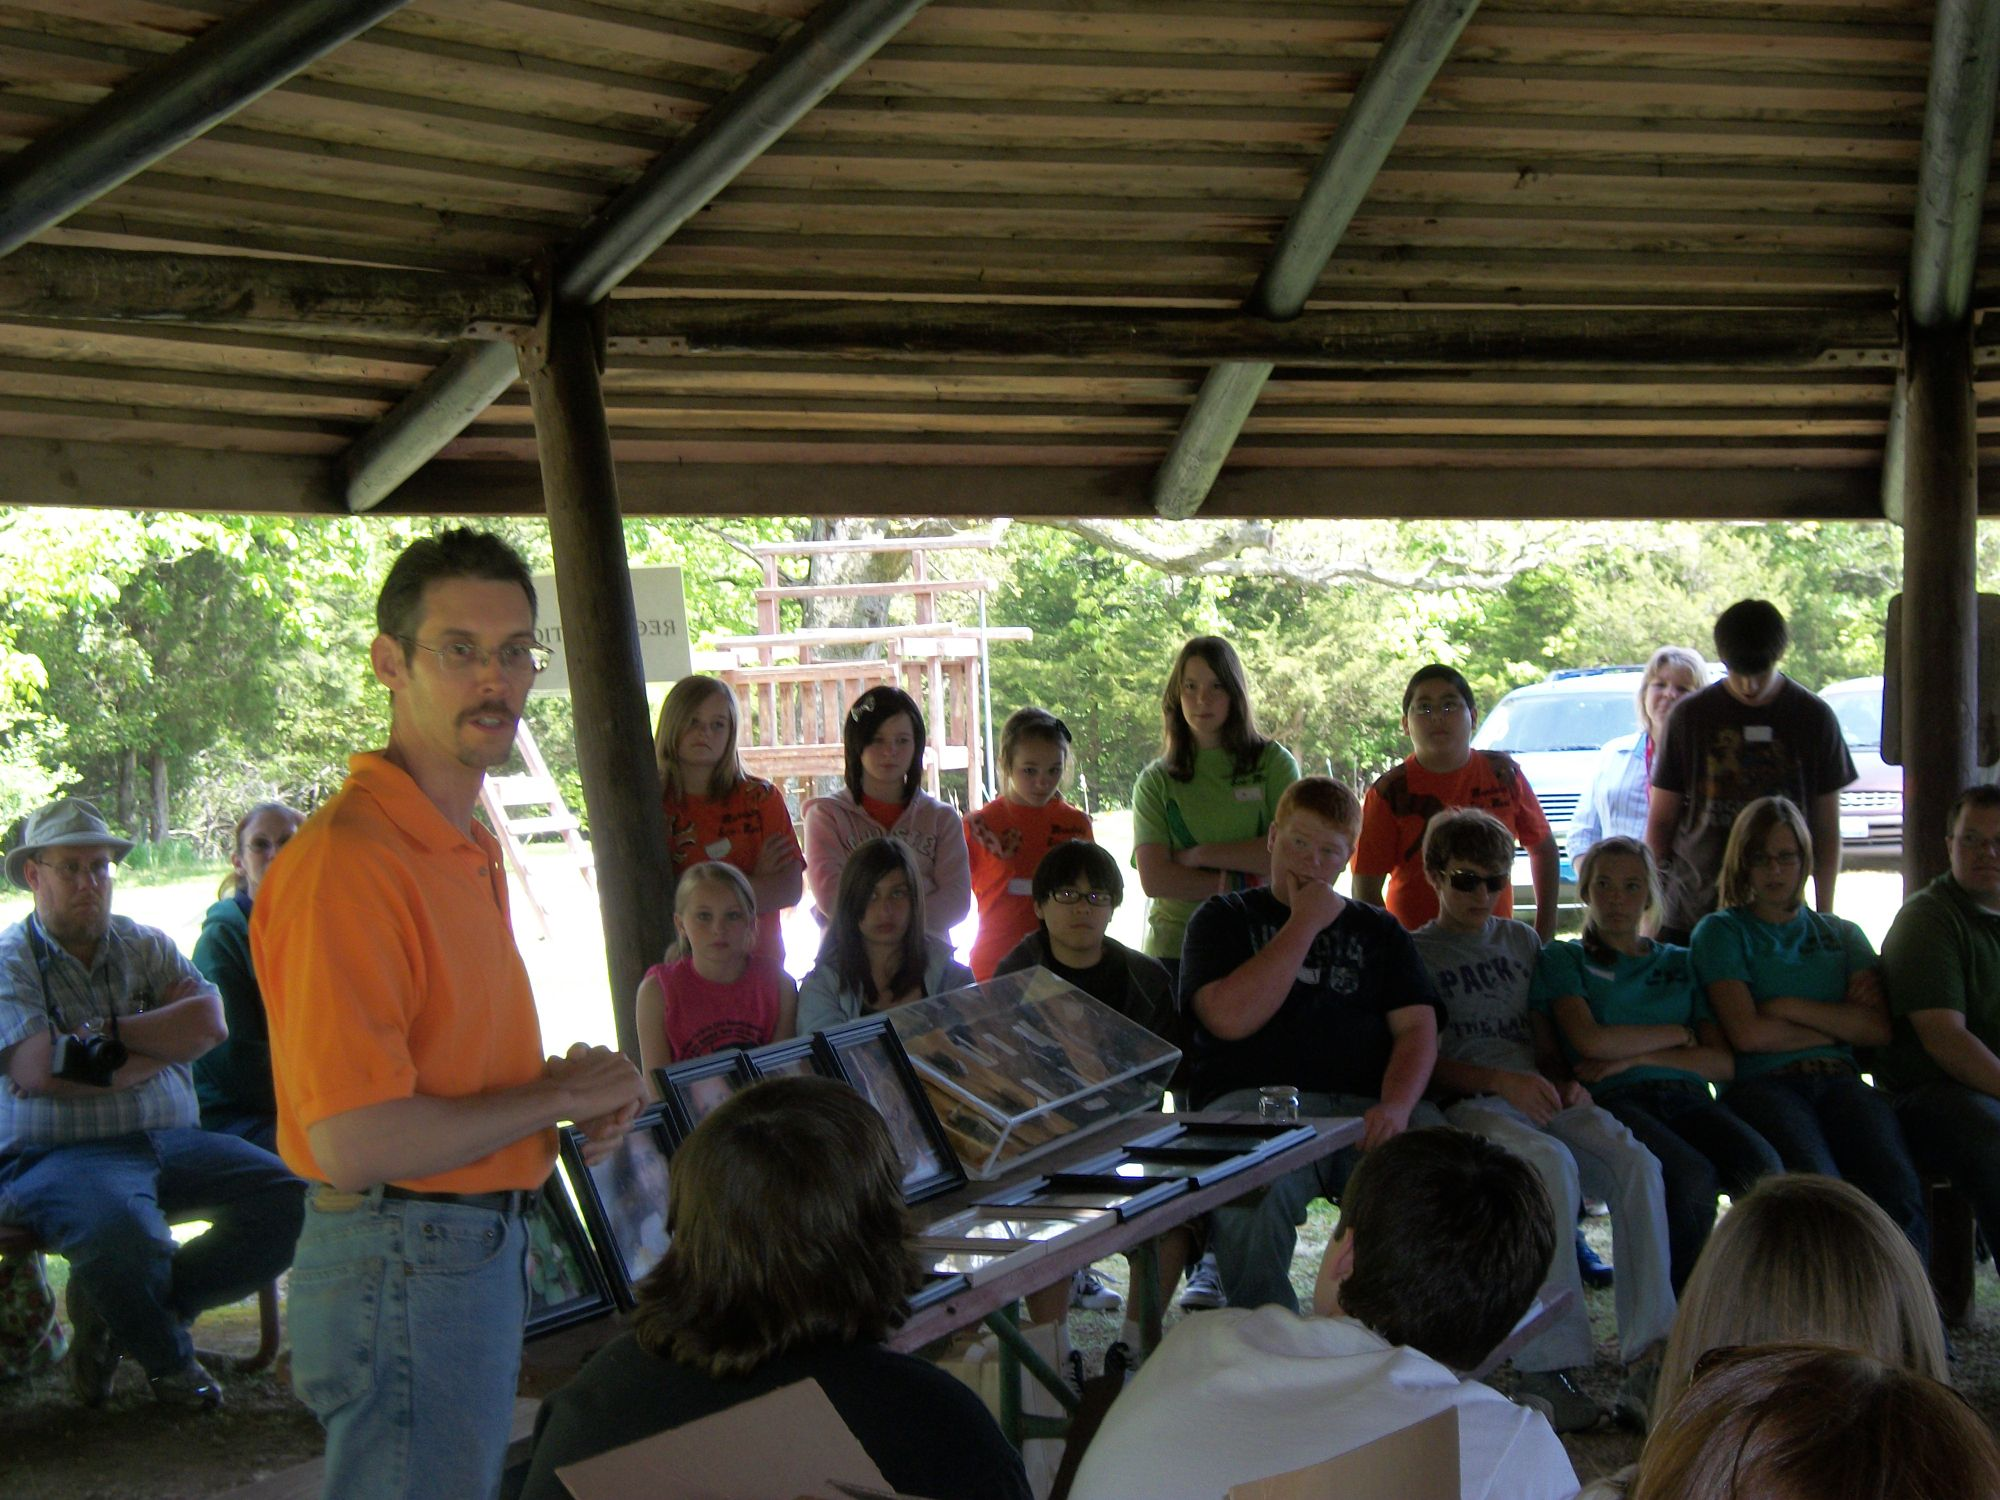 Dr. Austin giving a bat presentation at the LaSalle County Eco Meet 2010.